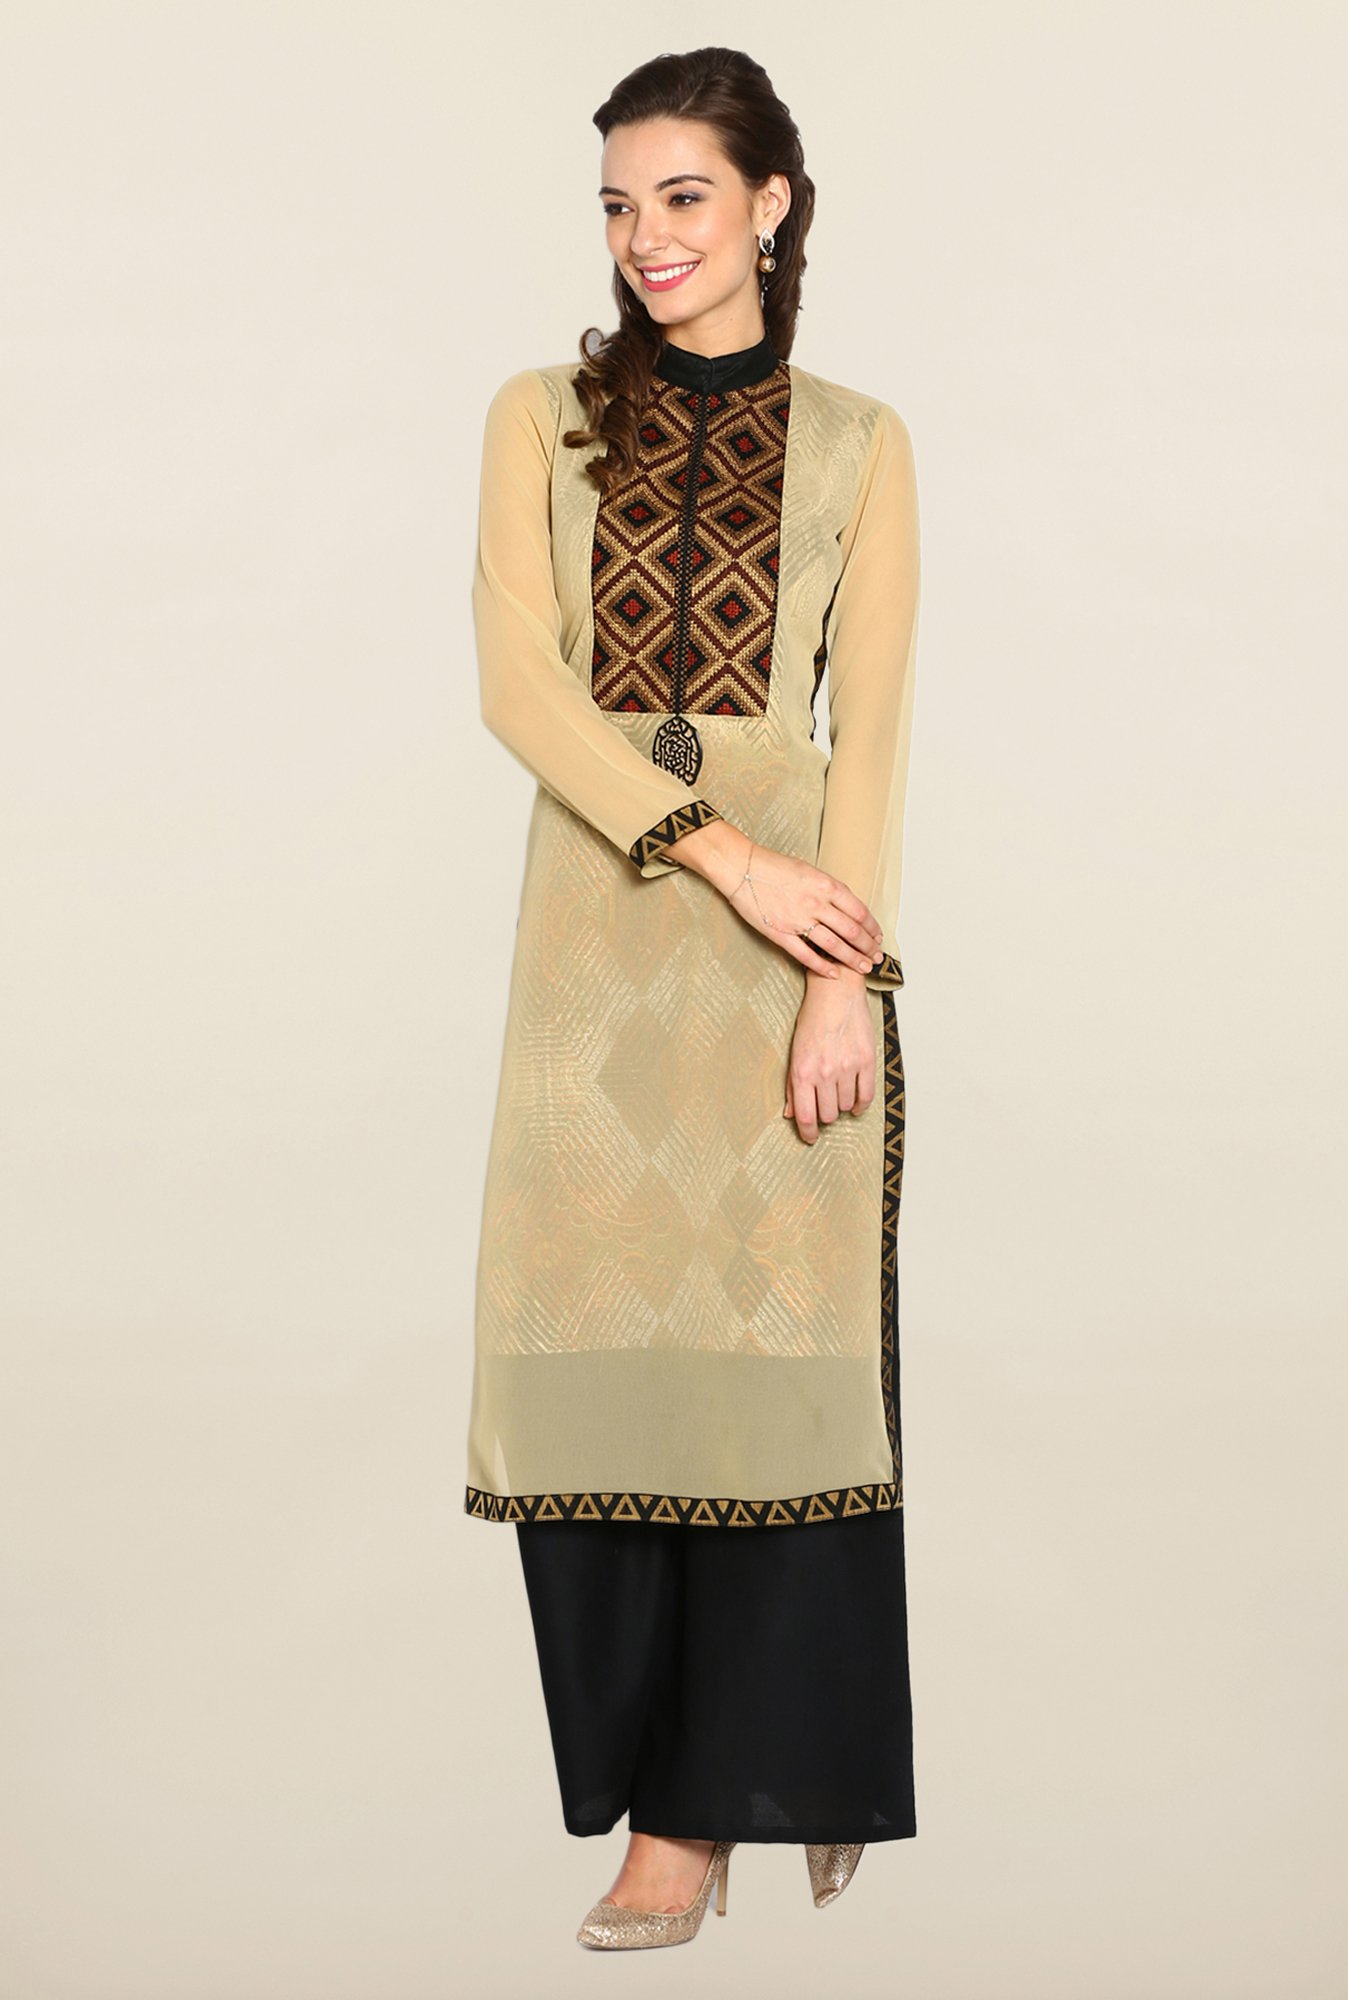 Soch Beige & Black Georgette Suit Set